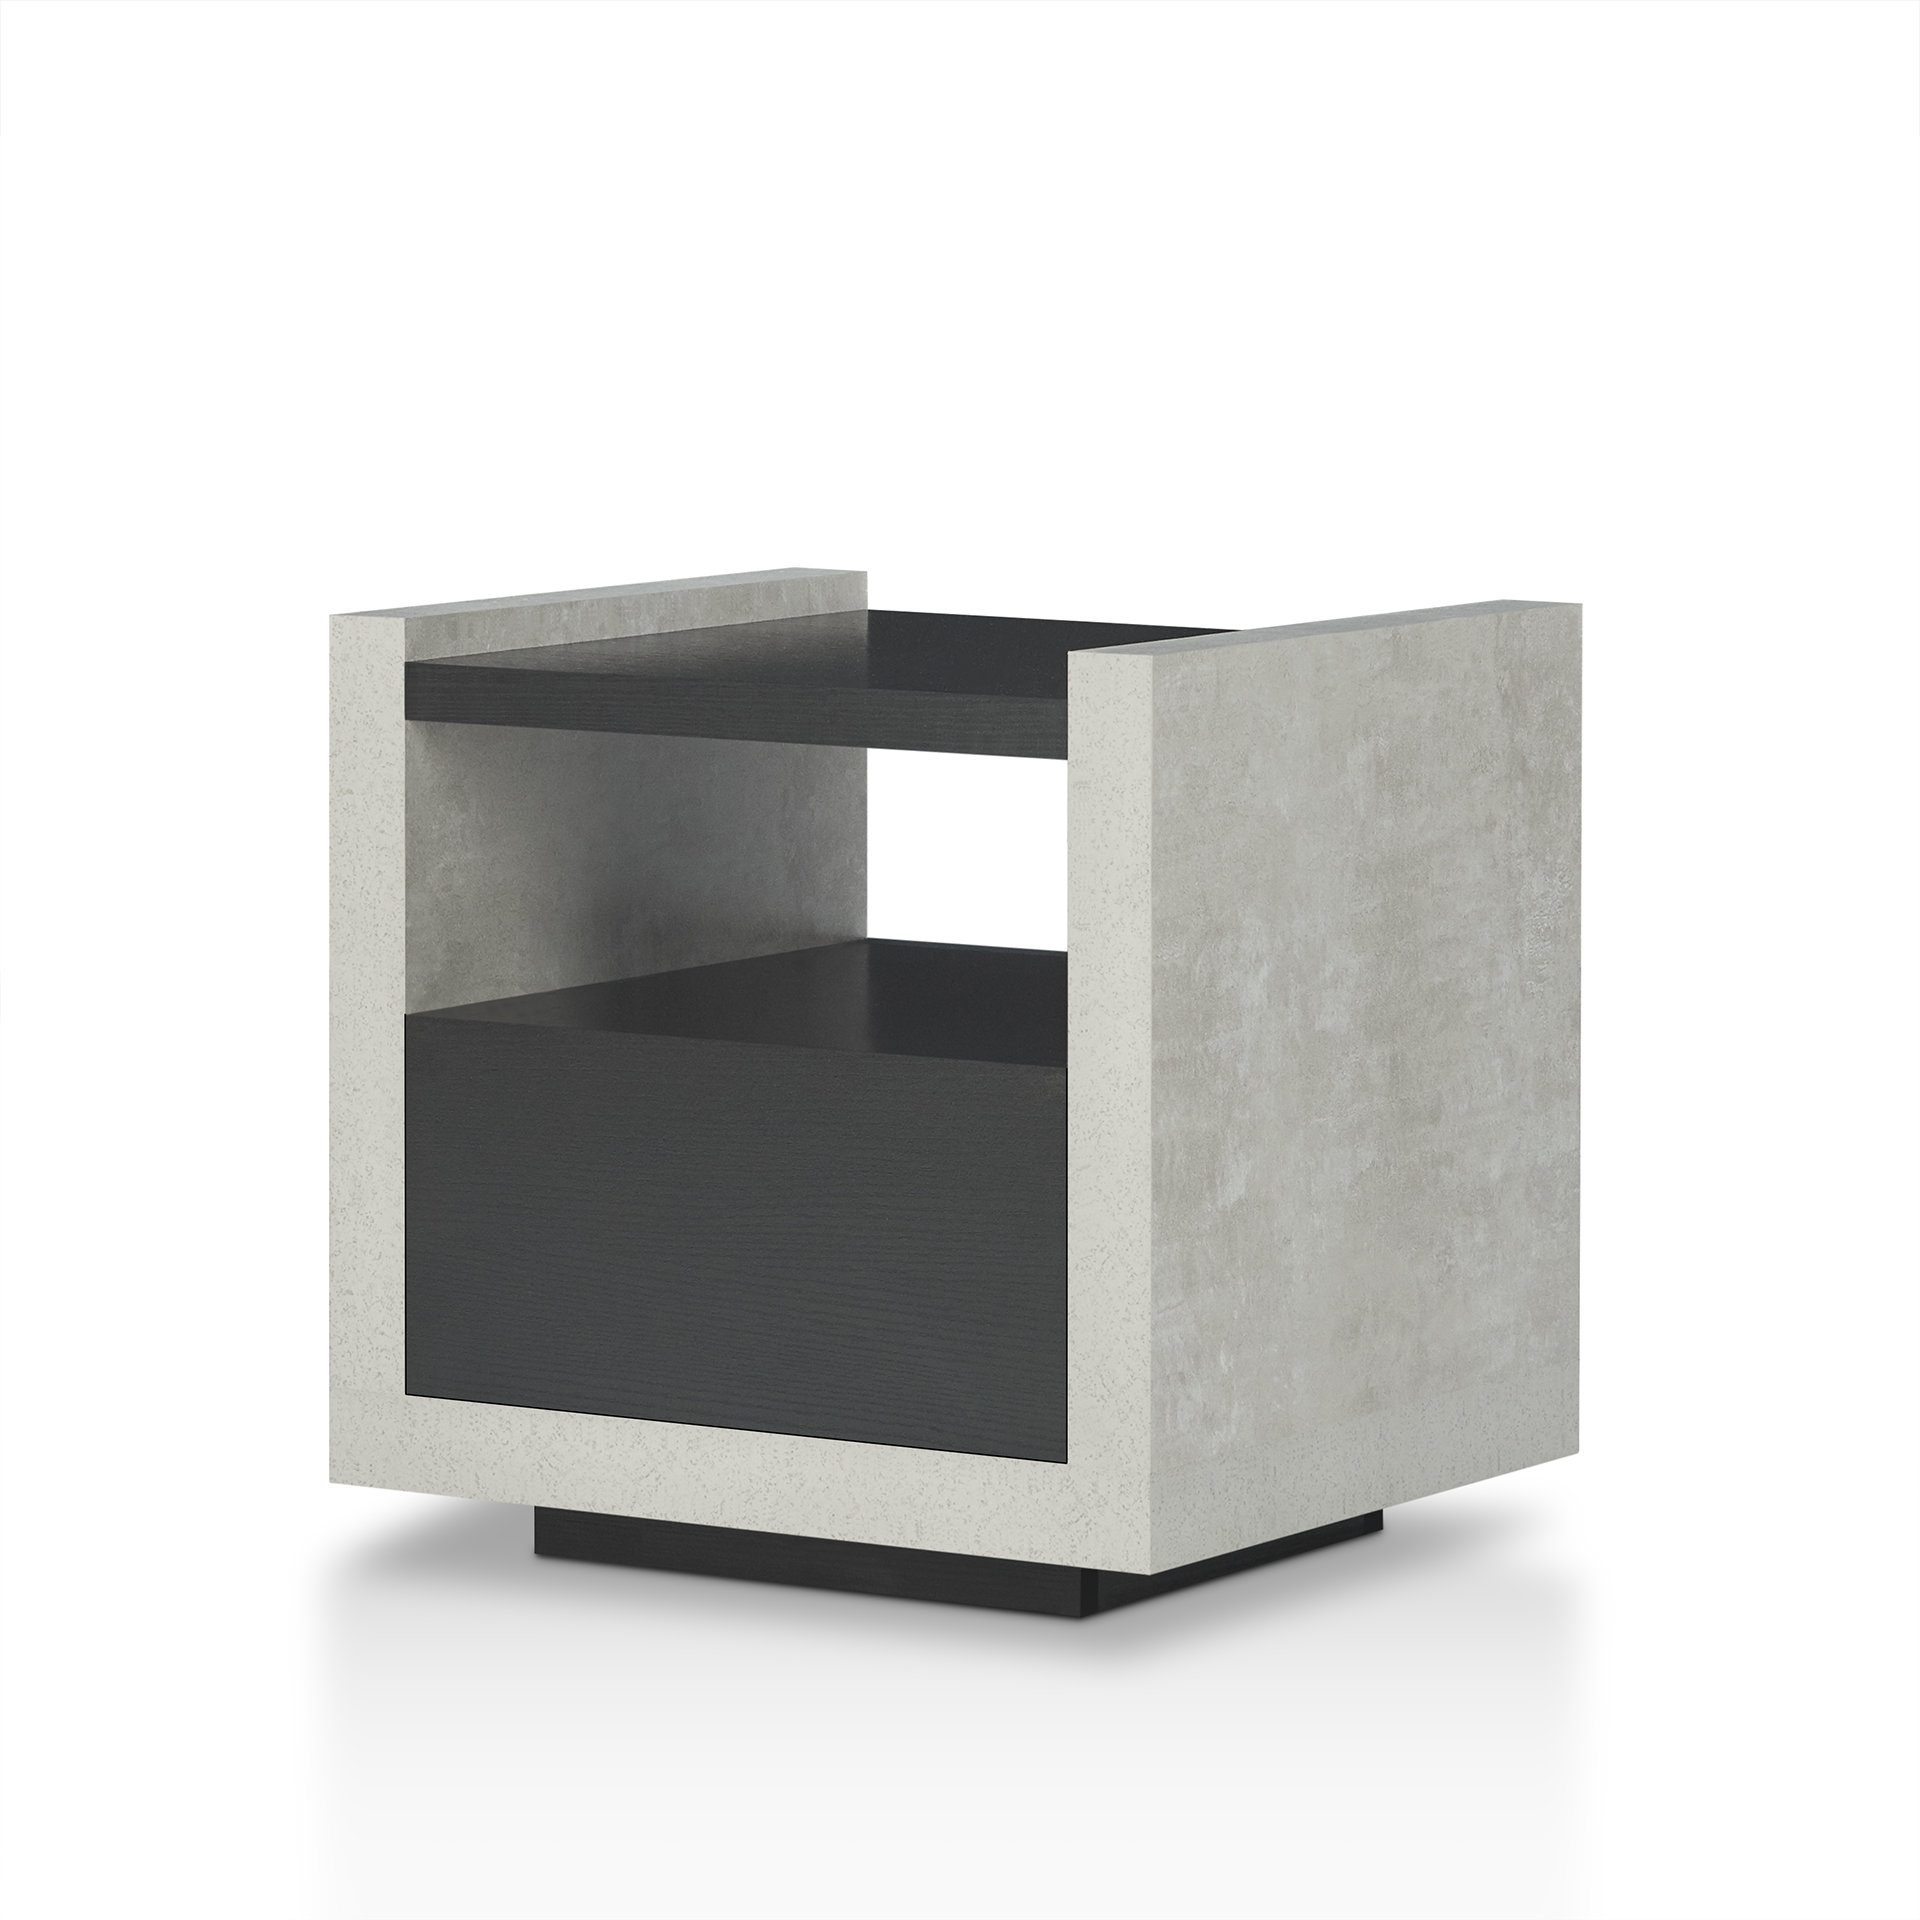 evony contemporary end table reviews joss main tables ashley furniture shoe storage boxes kmart replacement cushions for outdoor restoration montreal modern silver matching